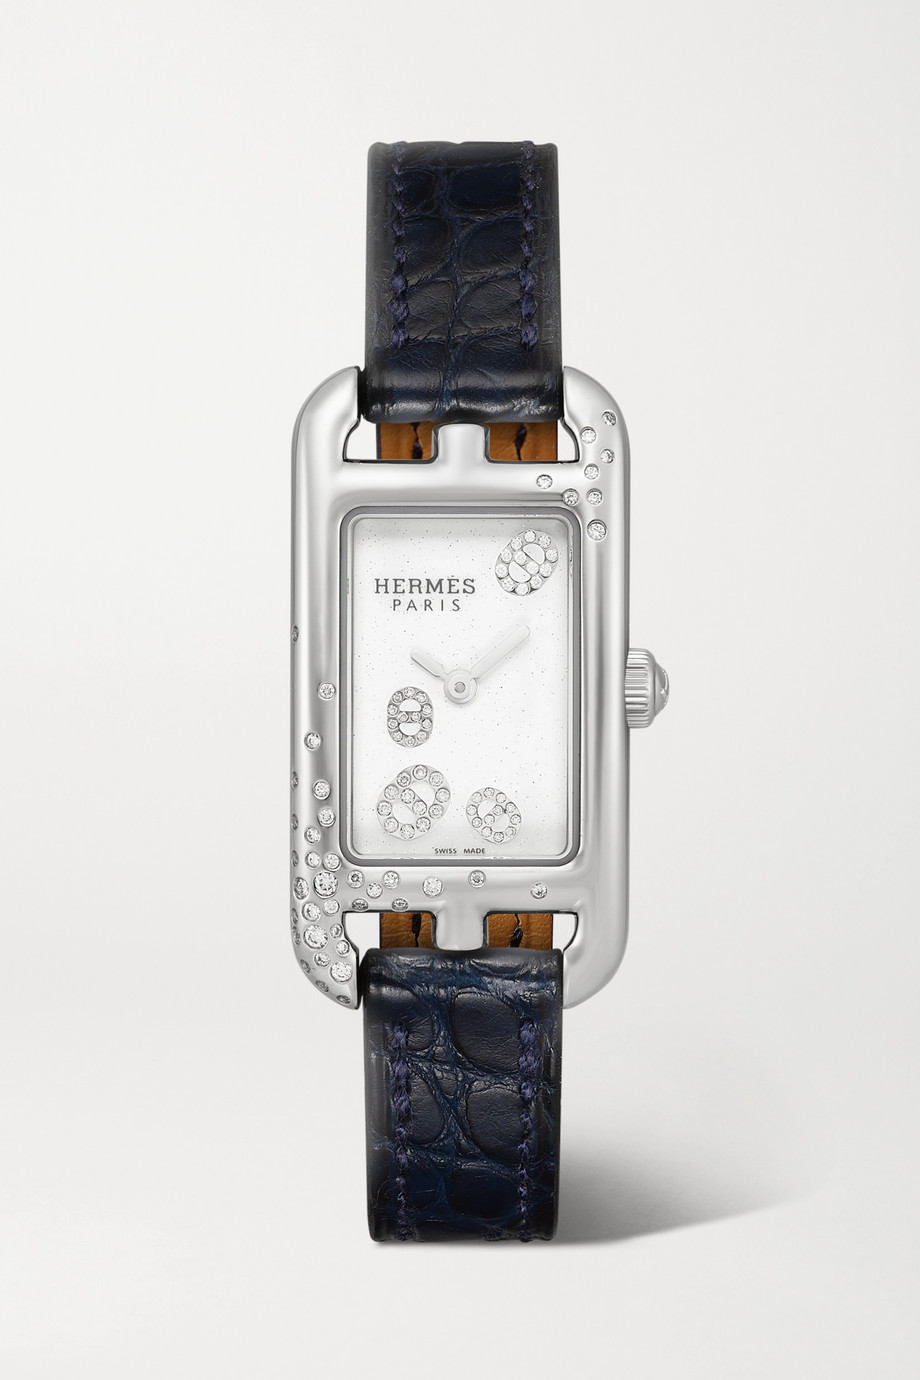 Hermès Timepieces Montre en acier inoxydable et diamants à bracelet en alligator Nantucket Very Small 17 mm